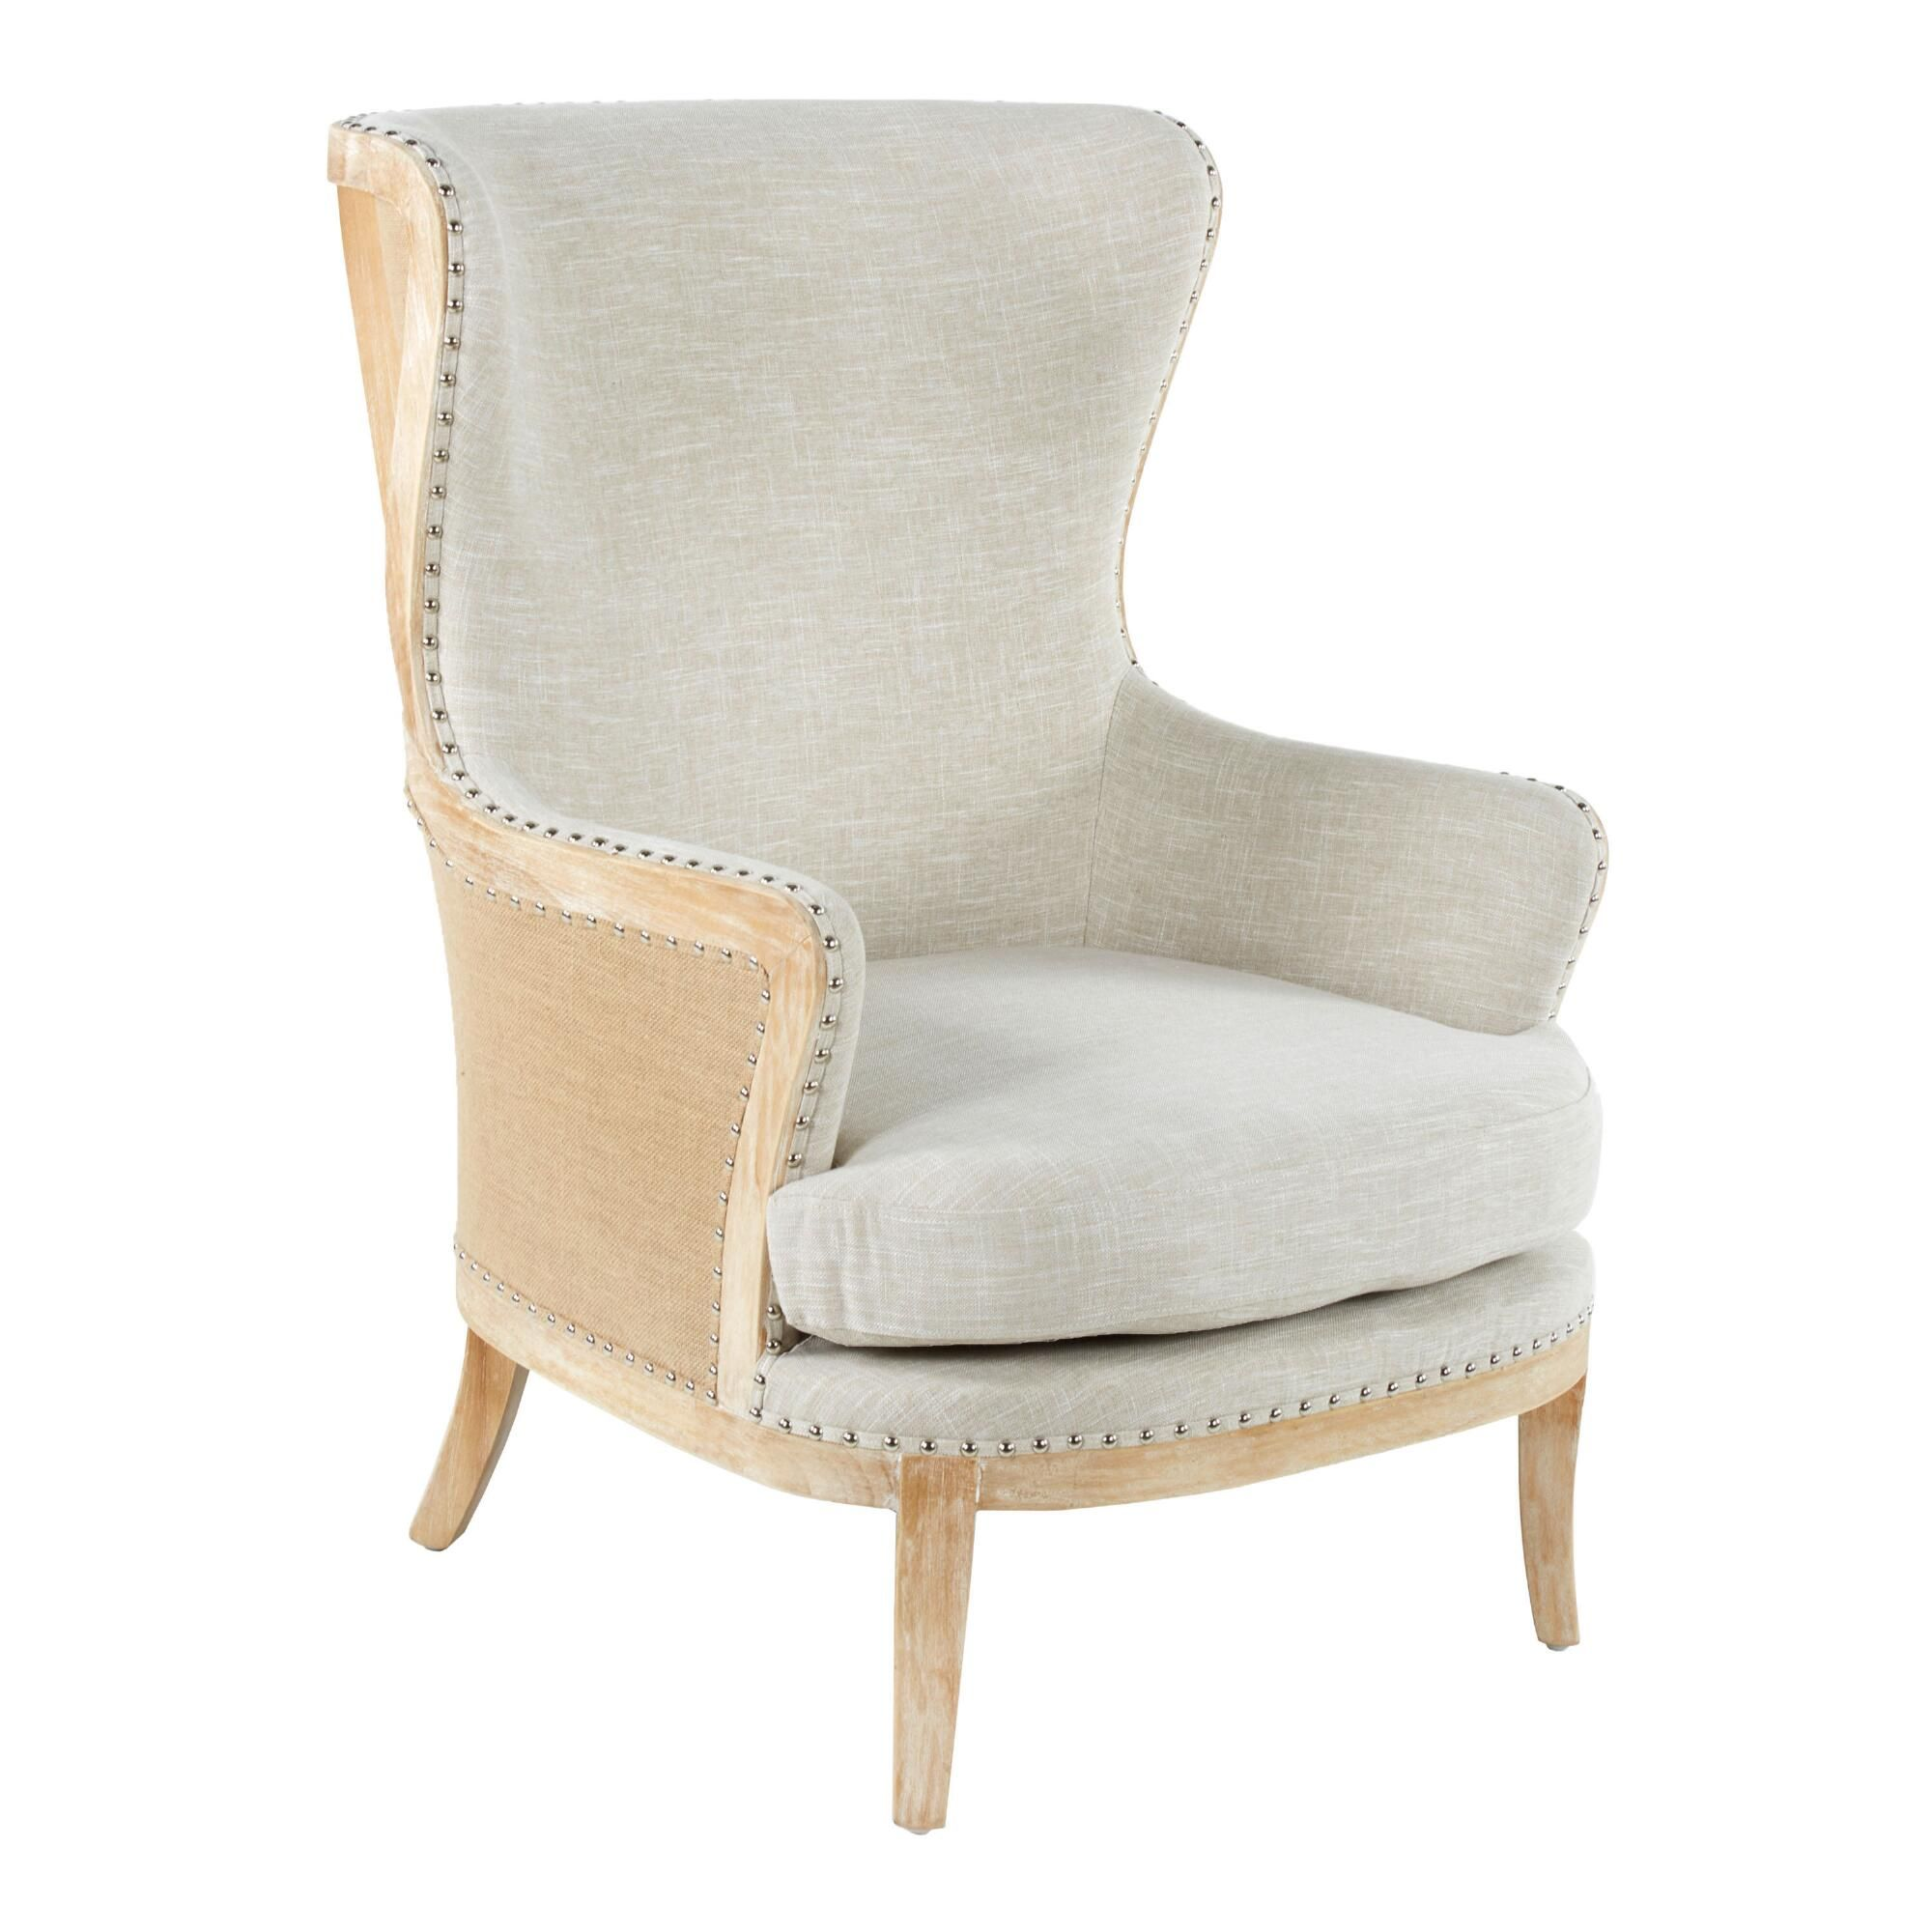 Beige Linen and Wood Sydney Upholstered Armchair: Natural ...